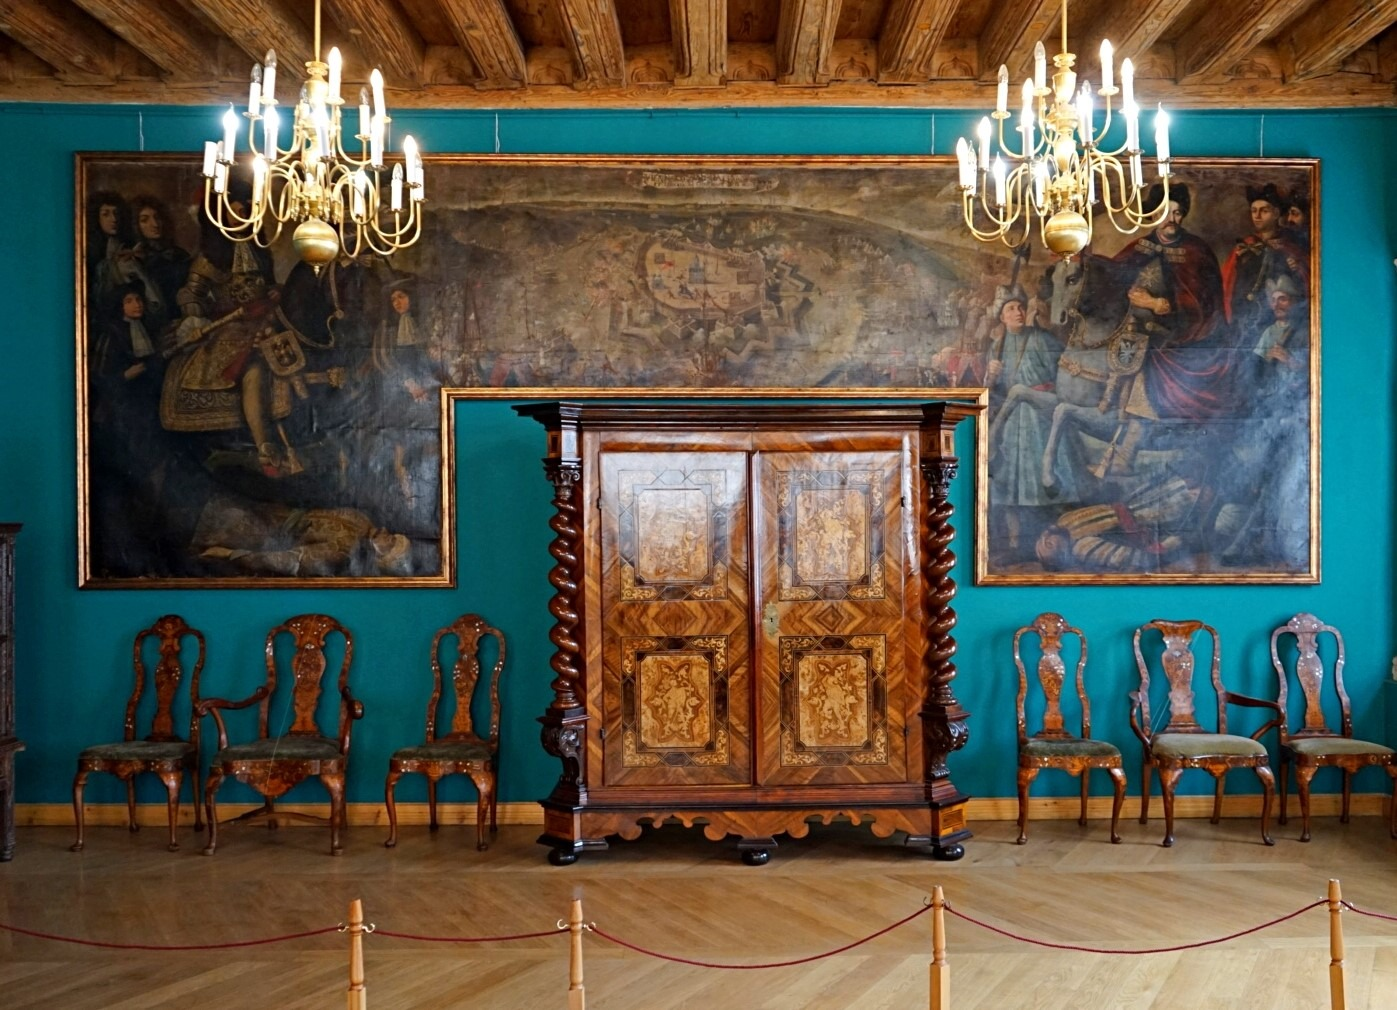 The exhibition hall in Bandinelli palace